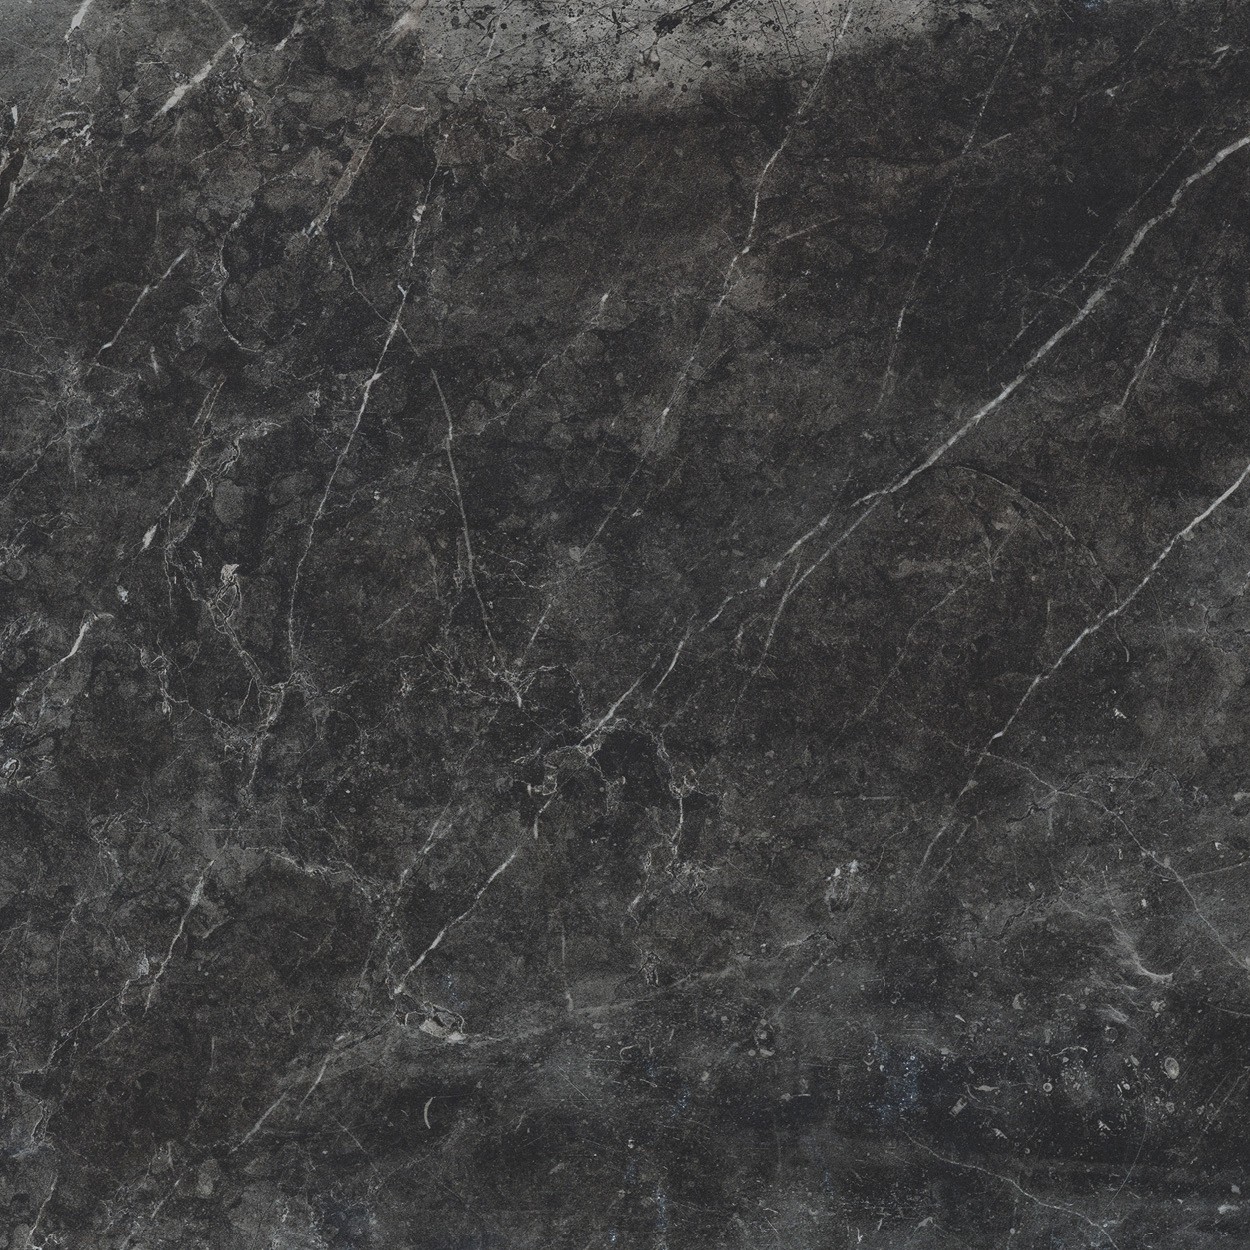 16 X 32 Evo Stone Graphite Honed finished Rectified Porcelain Tile (SPECIAL ORDER ONLY)